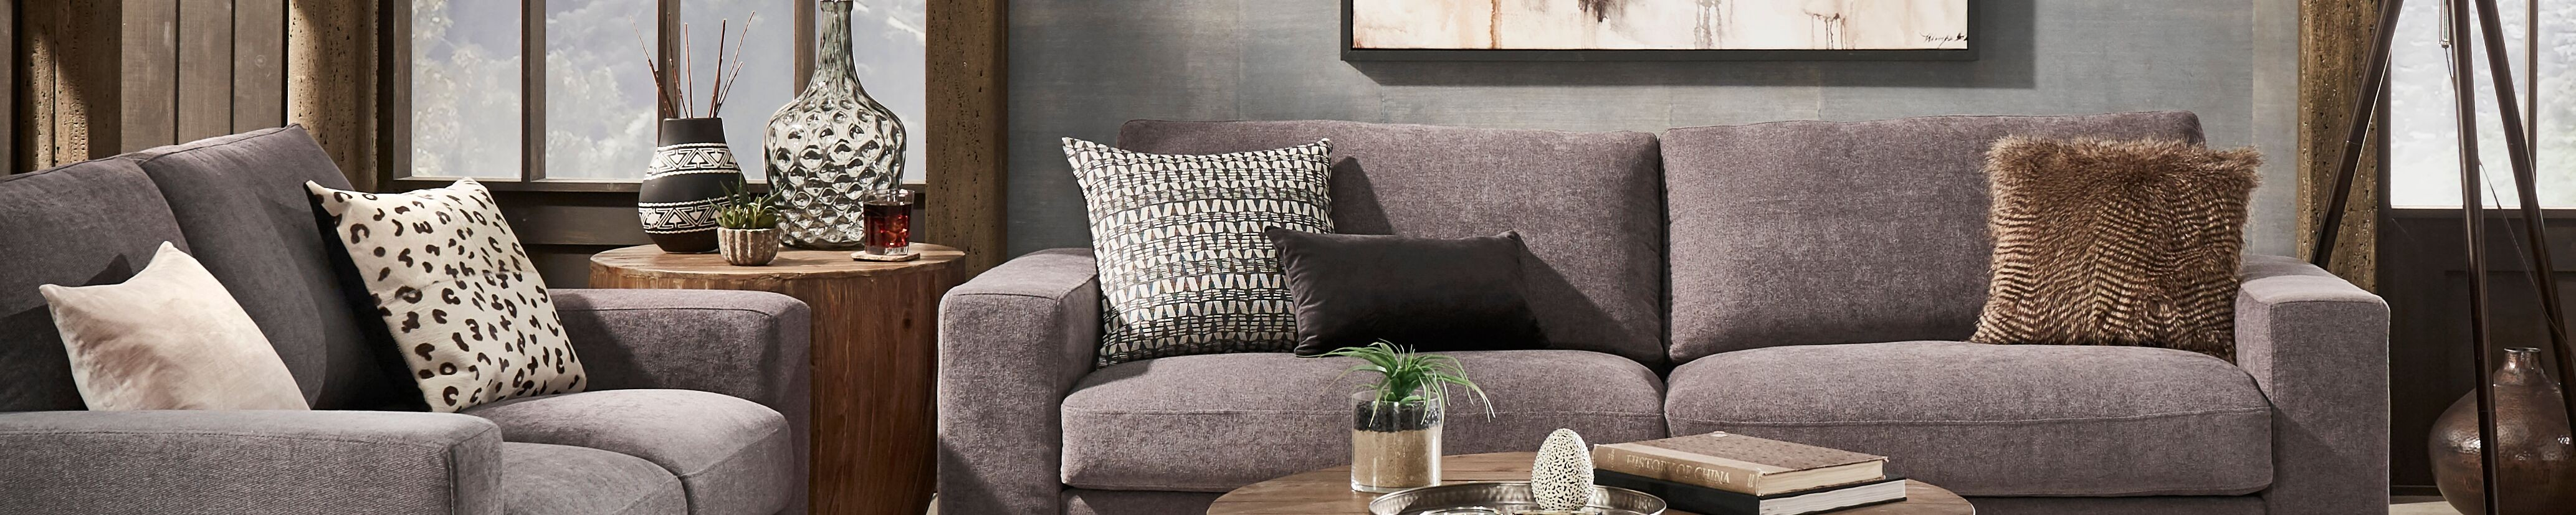 Top Line Furniture Corp Cover Image